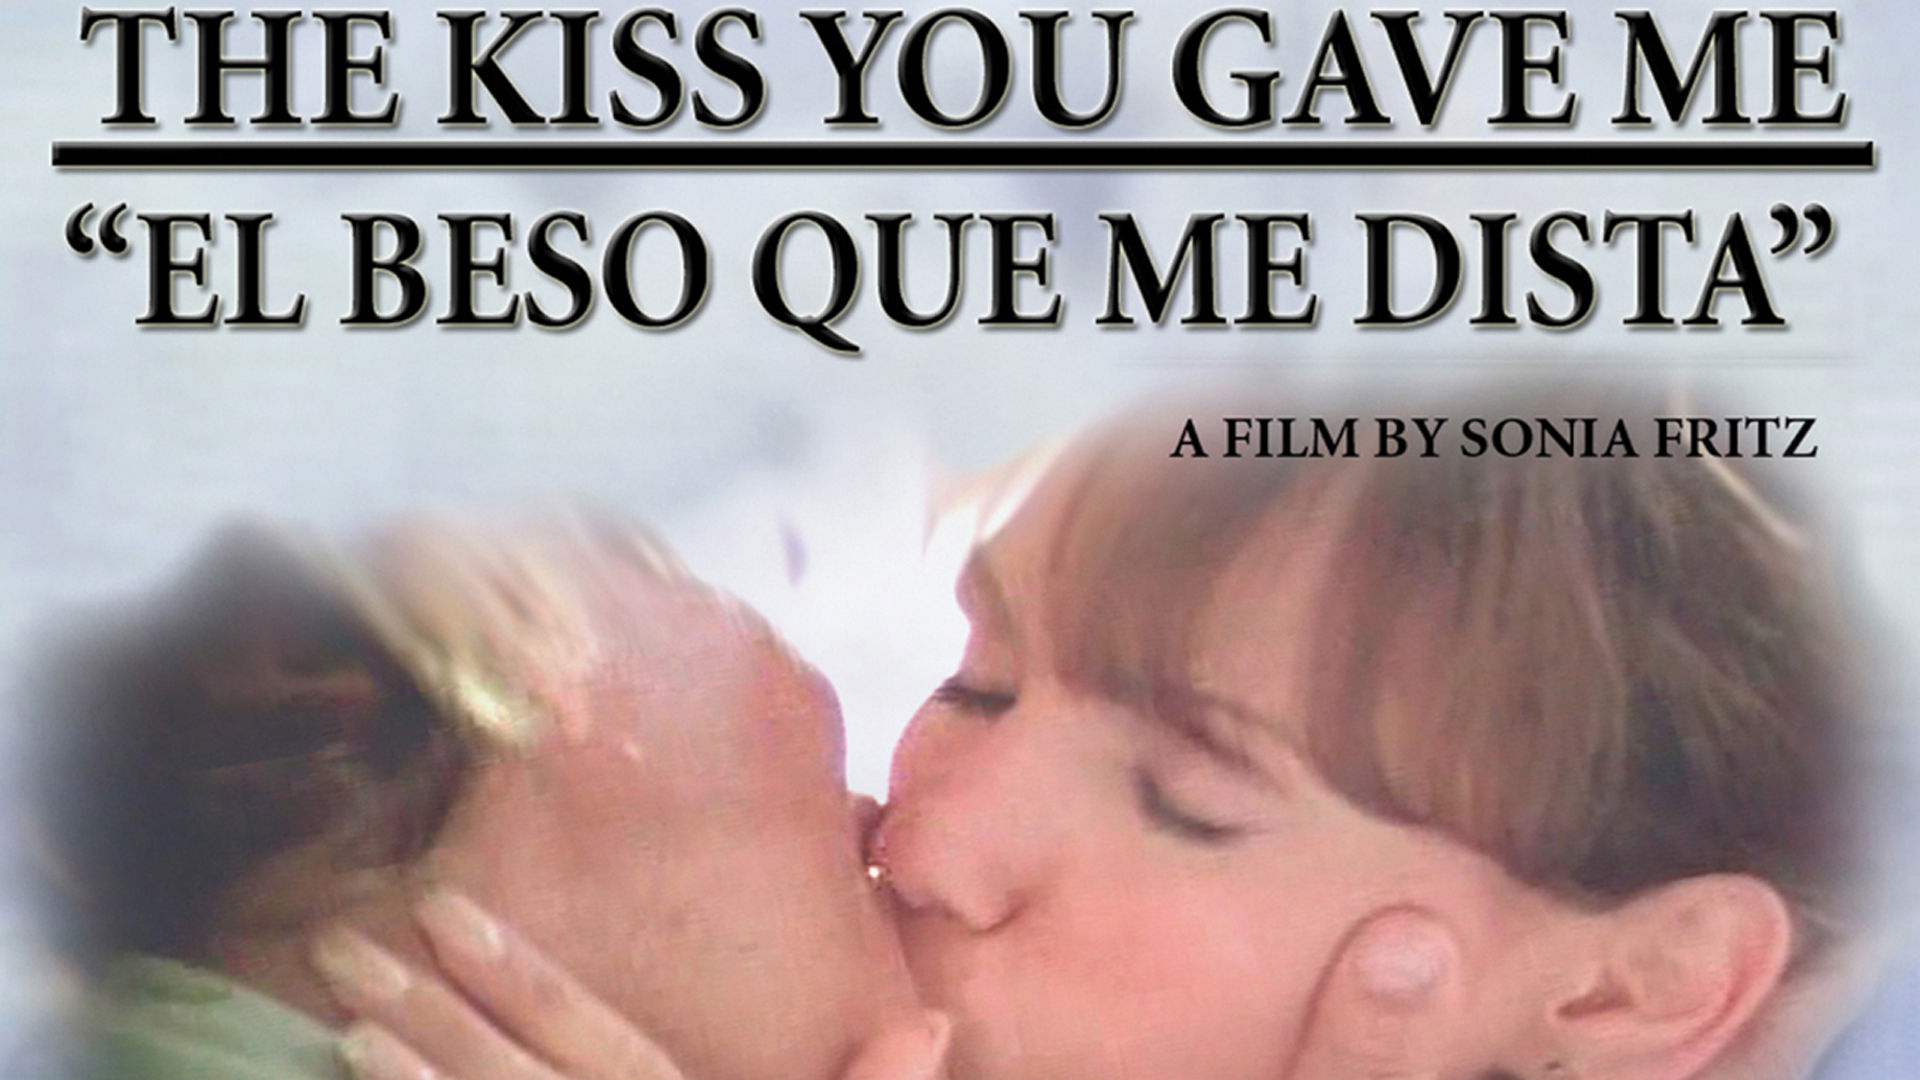 The Kiss You Gave Me